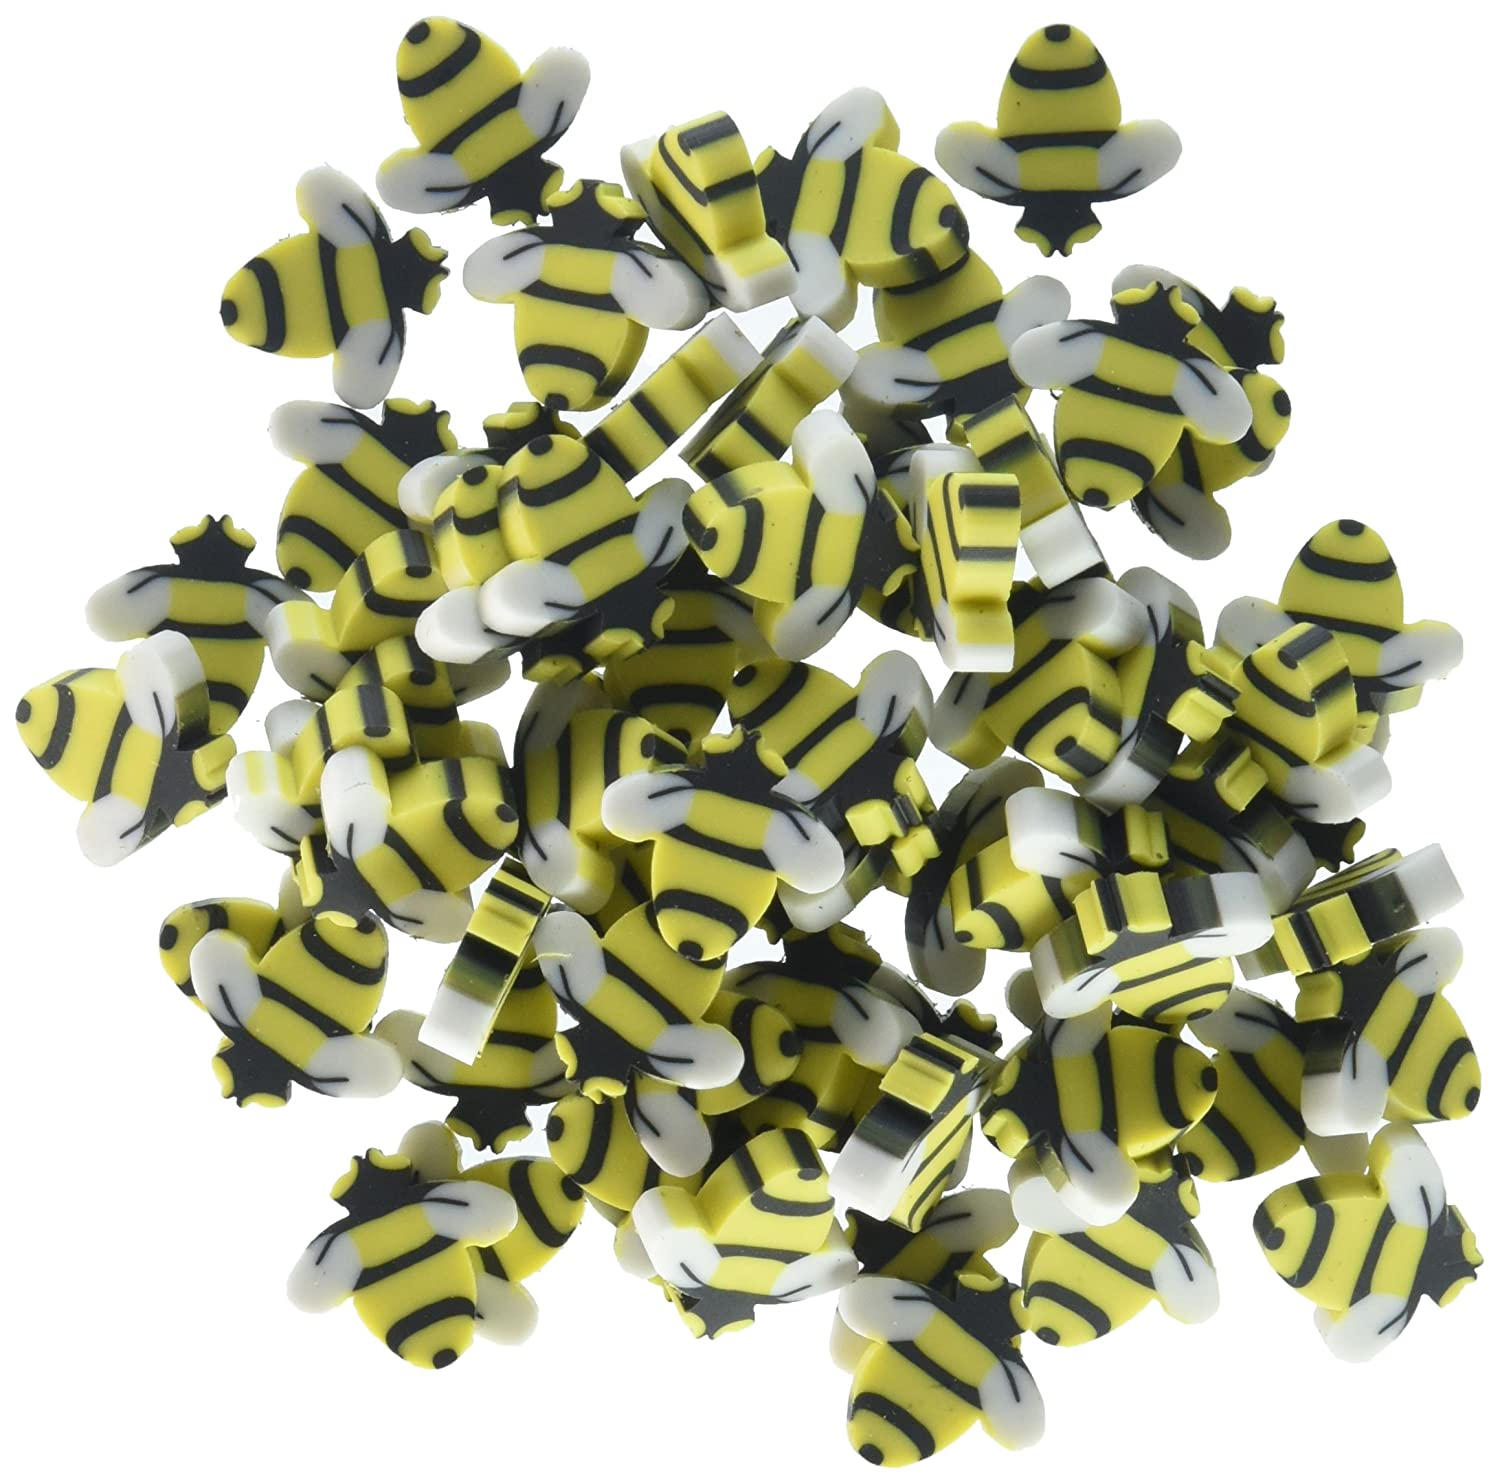 U.S Home Toy LM174 Mini Bumble Bee Erasers StealStreet SS-UST-LM174